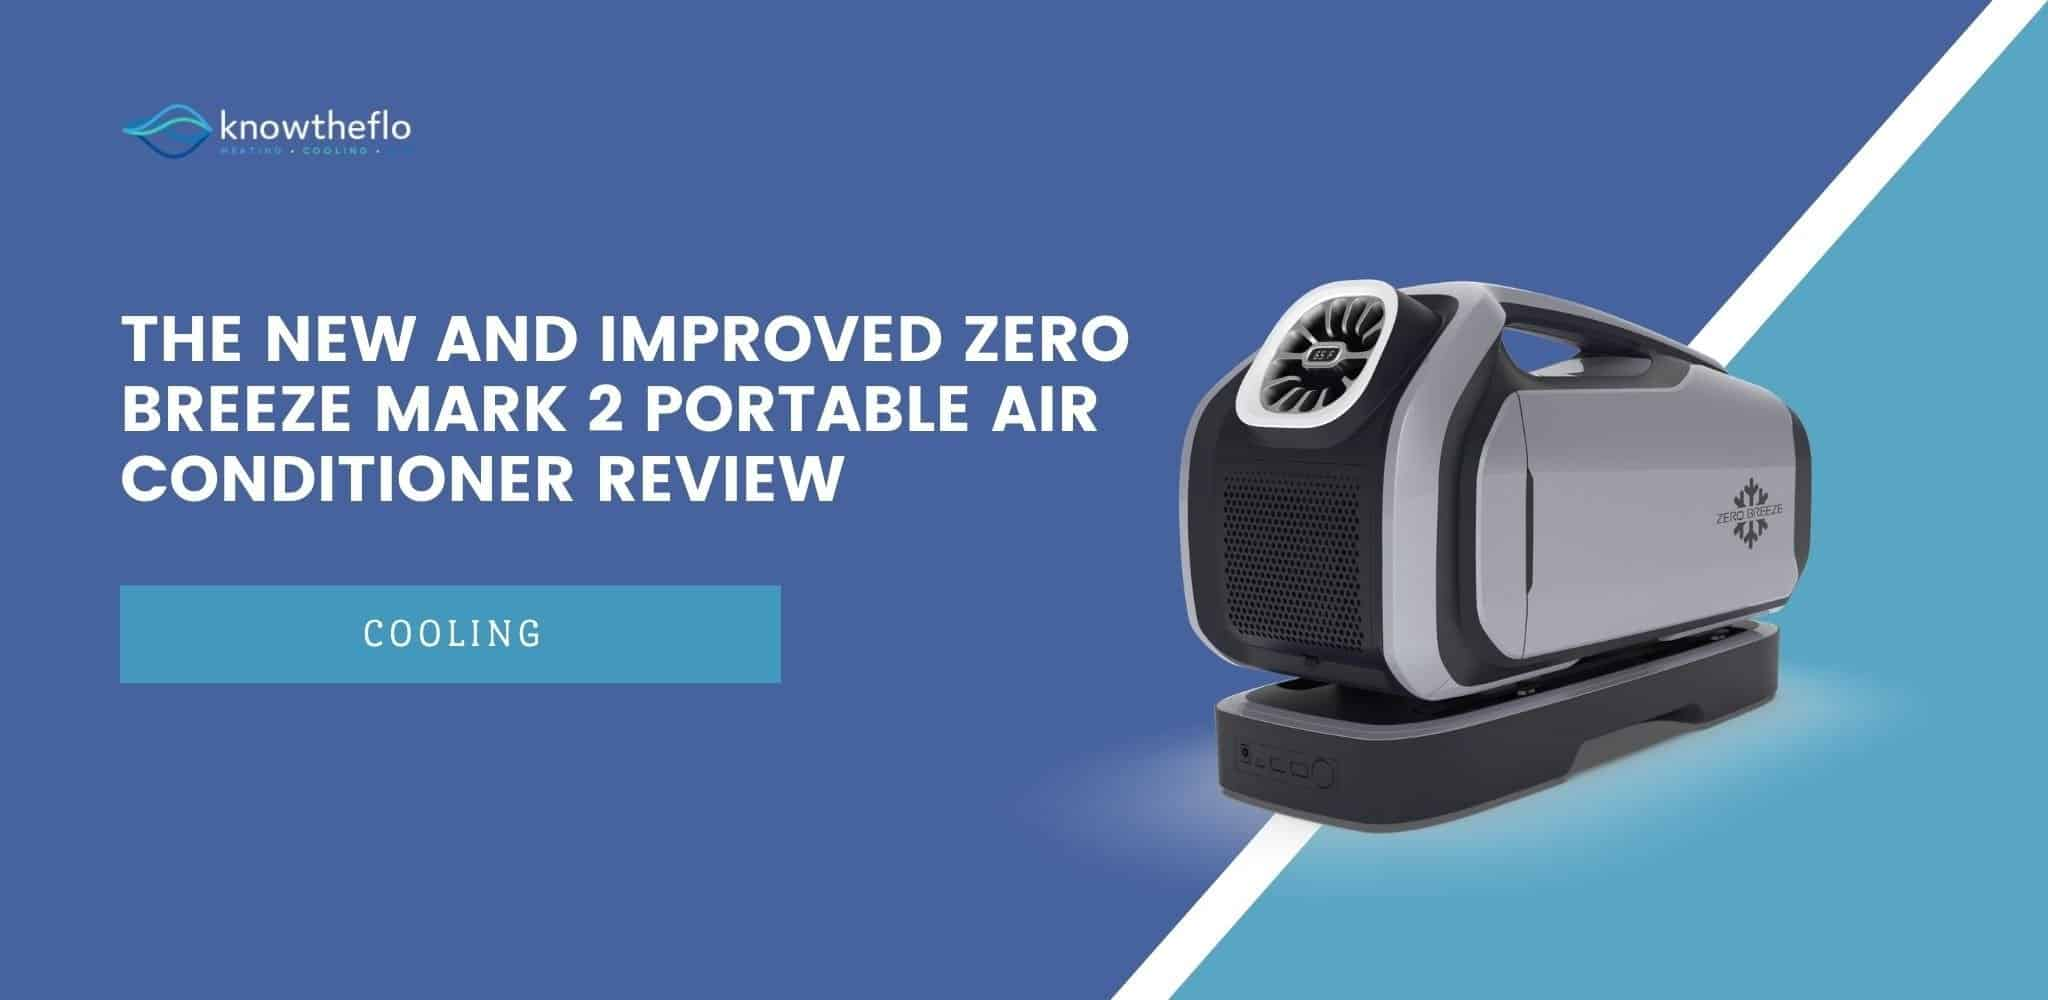 Review - The New and Improved Zero Breeze Mark 2 Portable Air Conditioner